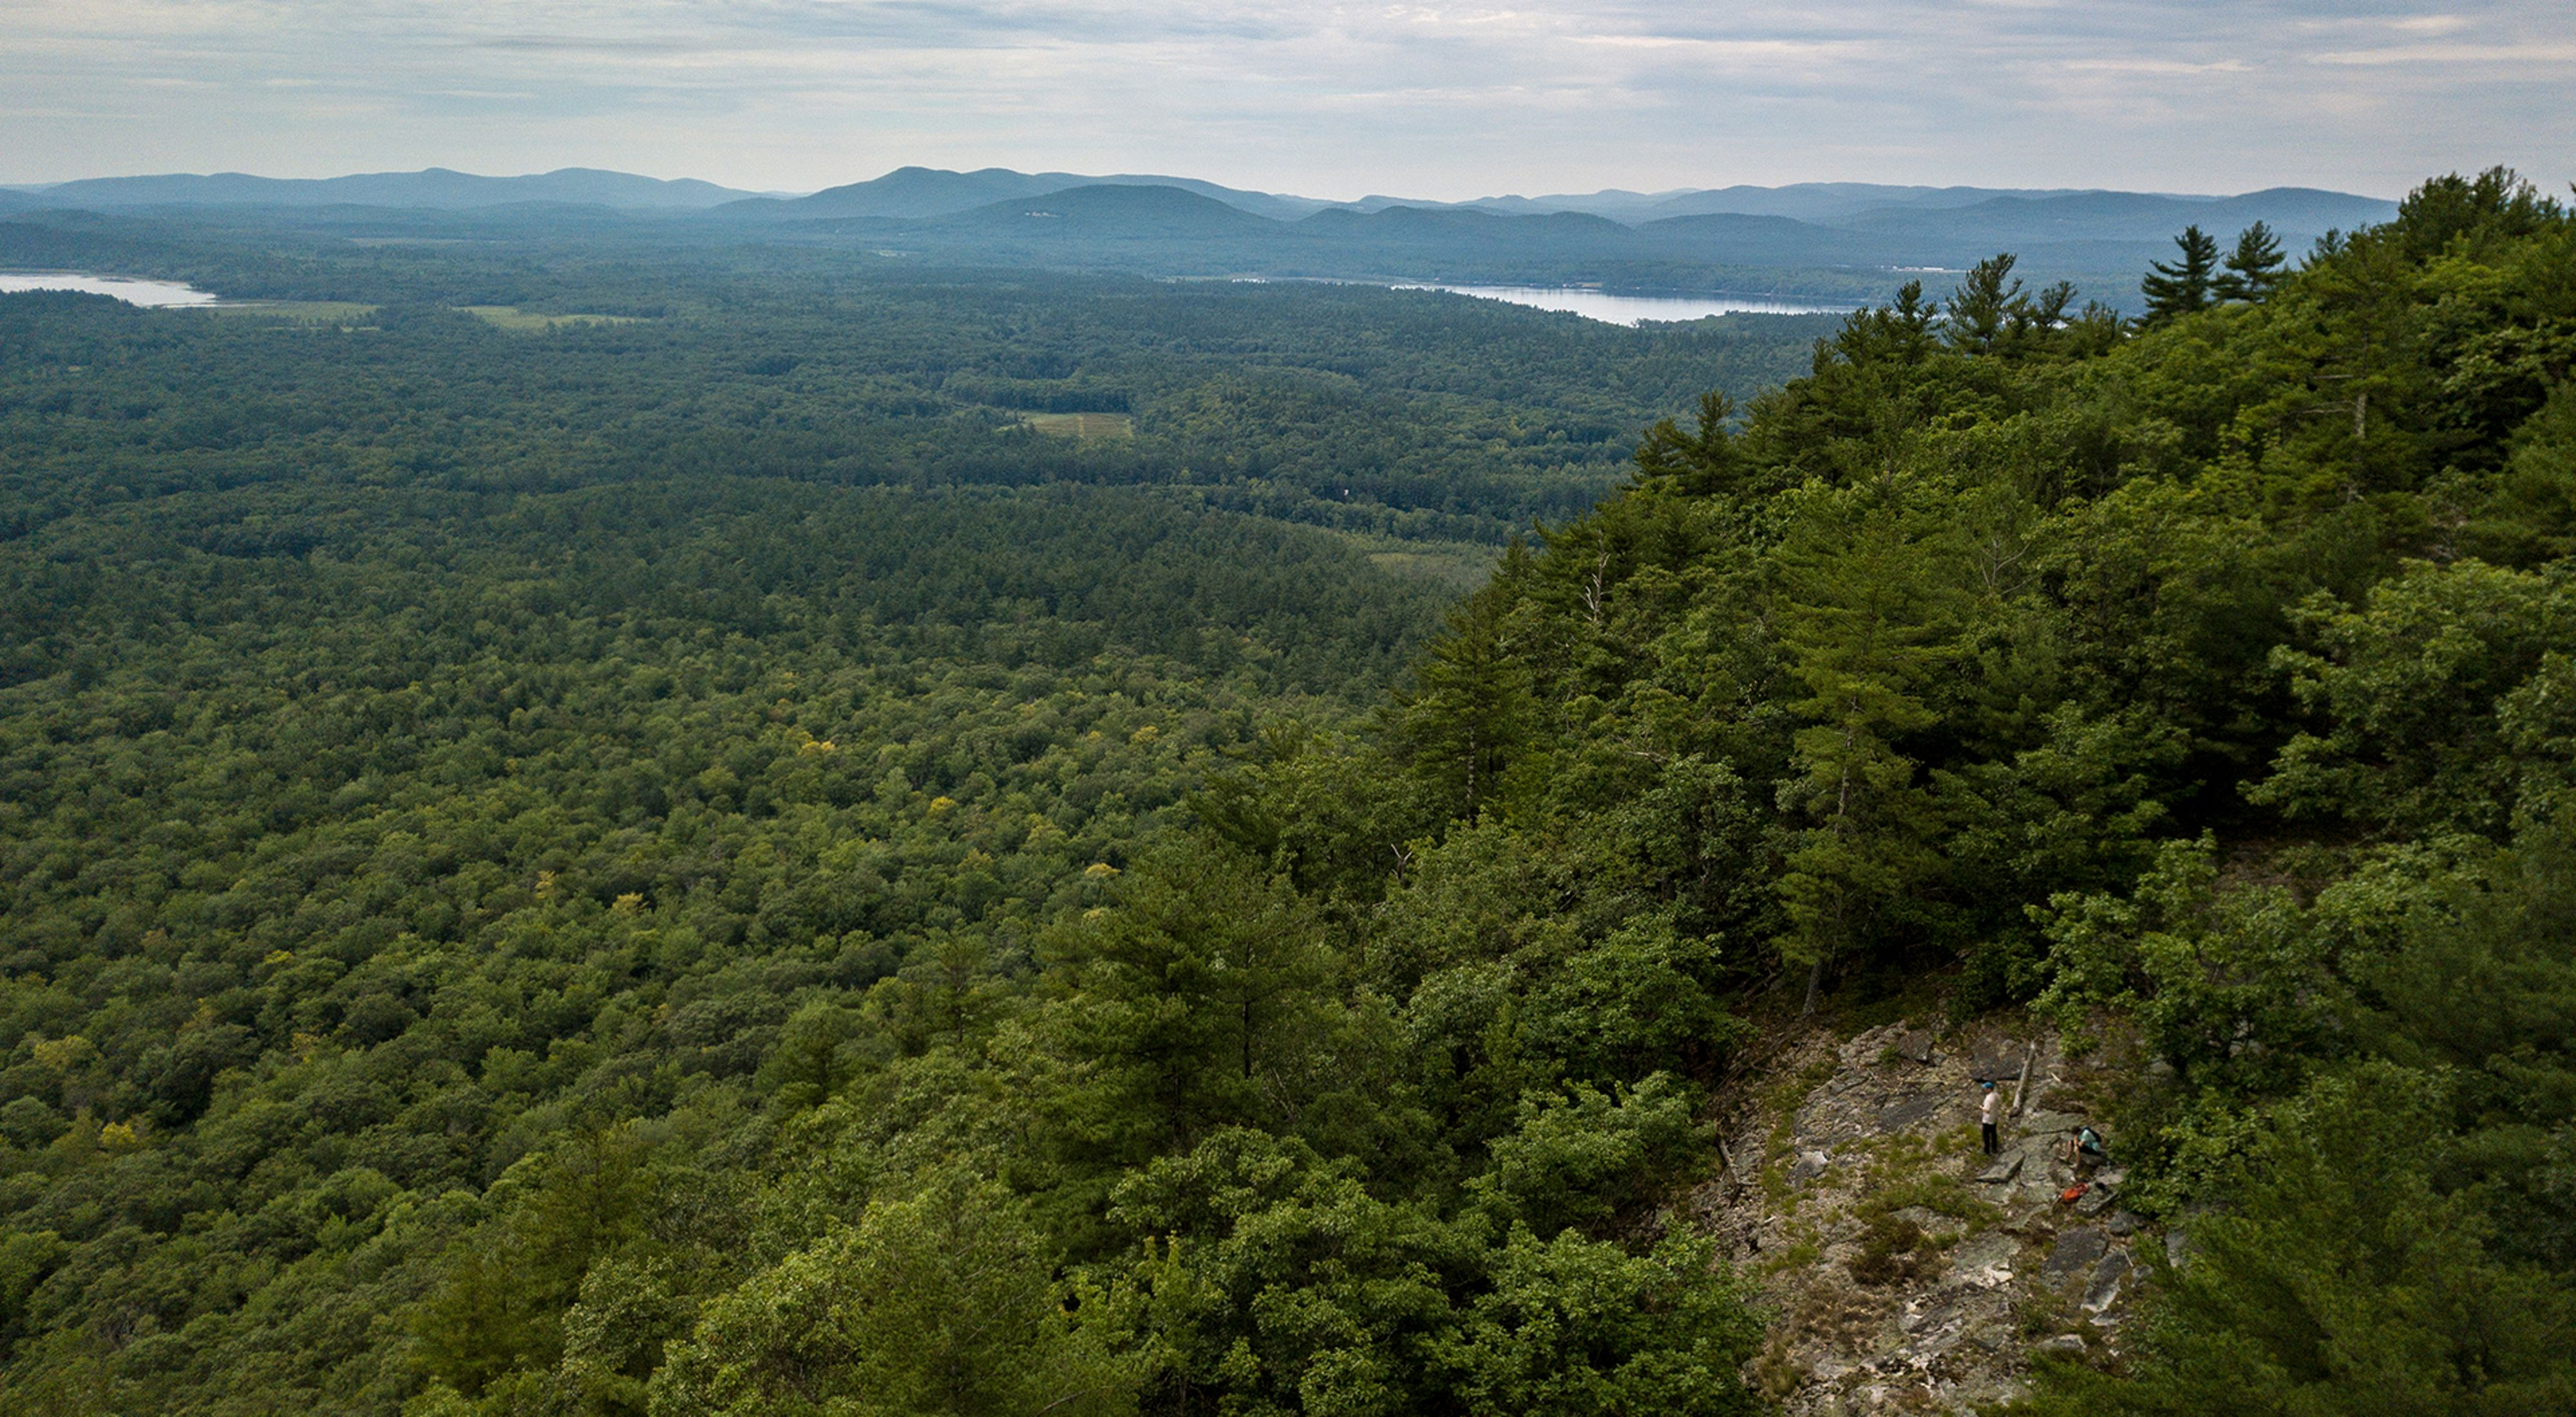 A view of a forested flood plain with lakes and distant mountains.